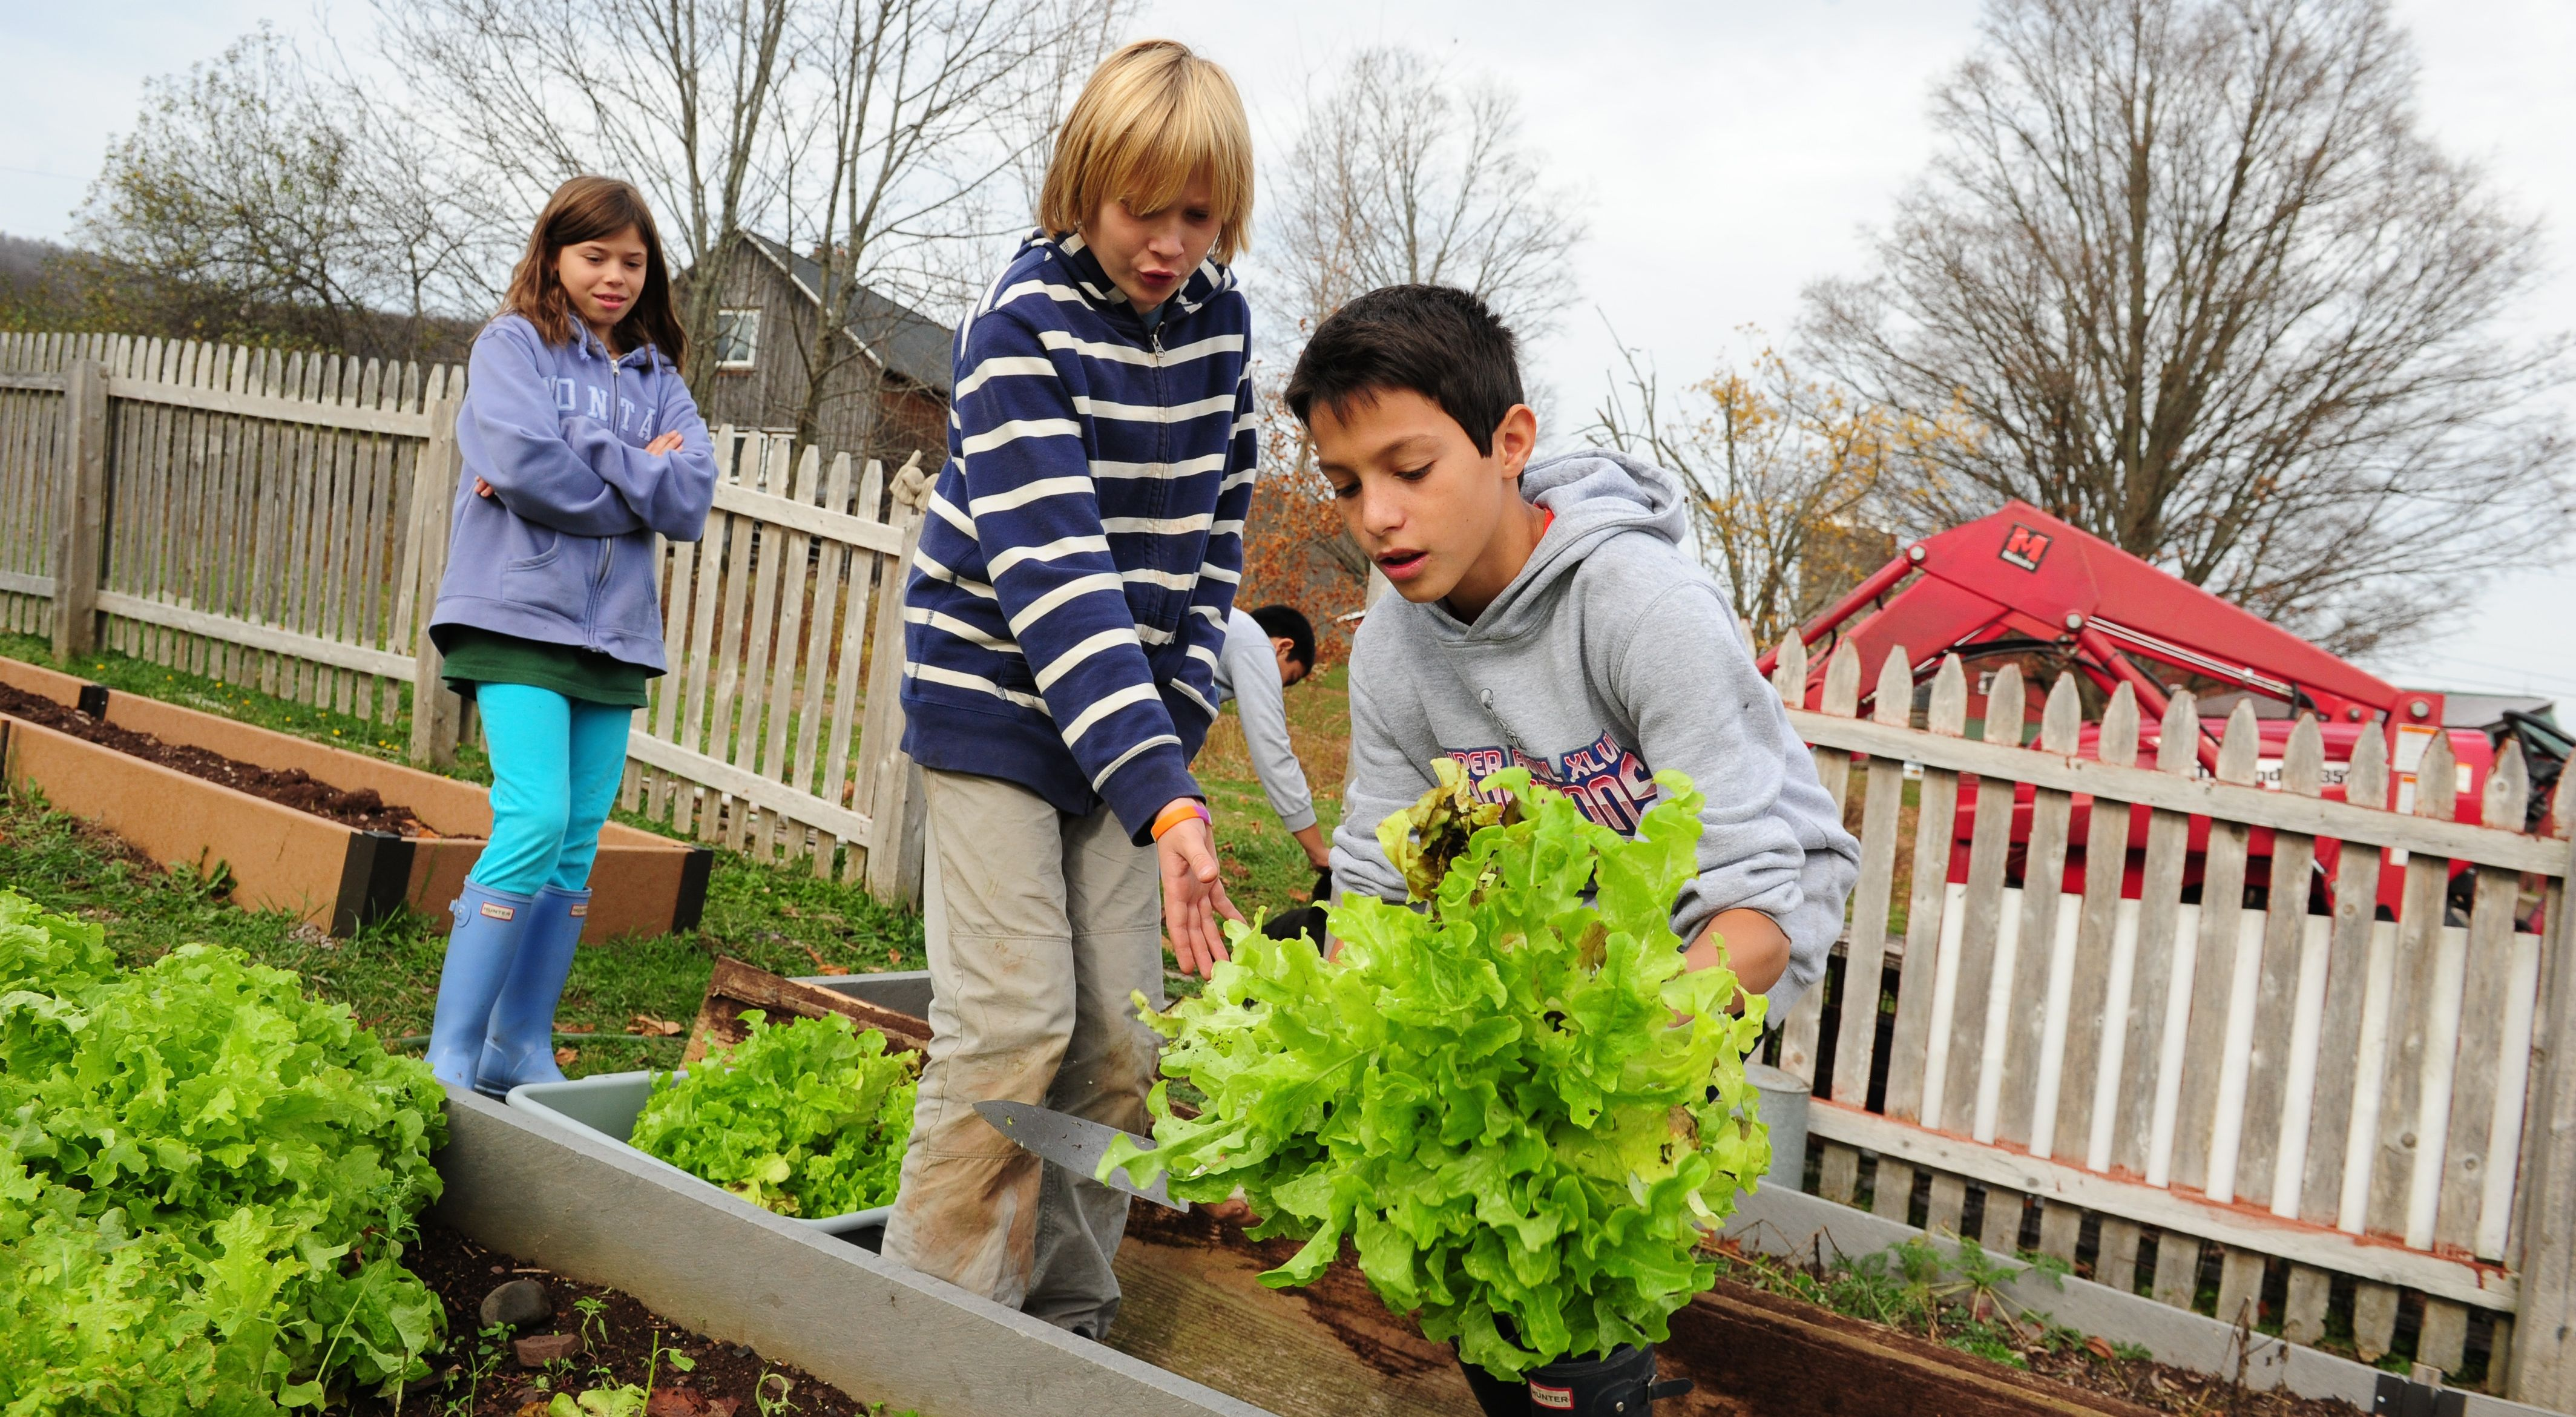 three children harvesting lettuce from a garden